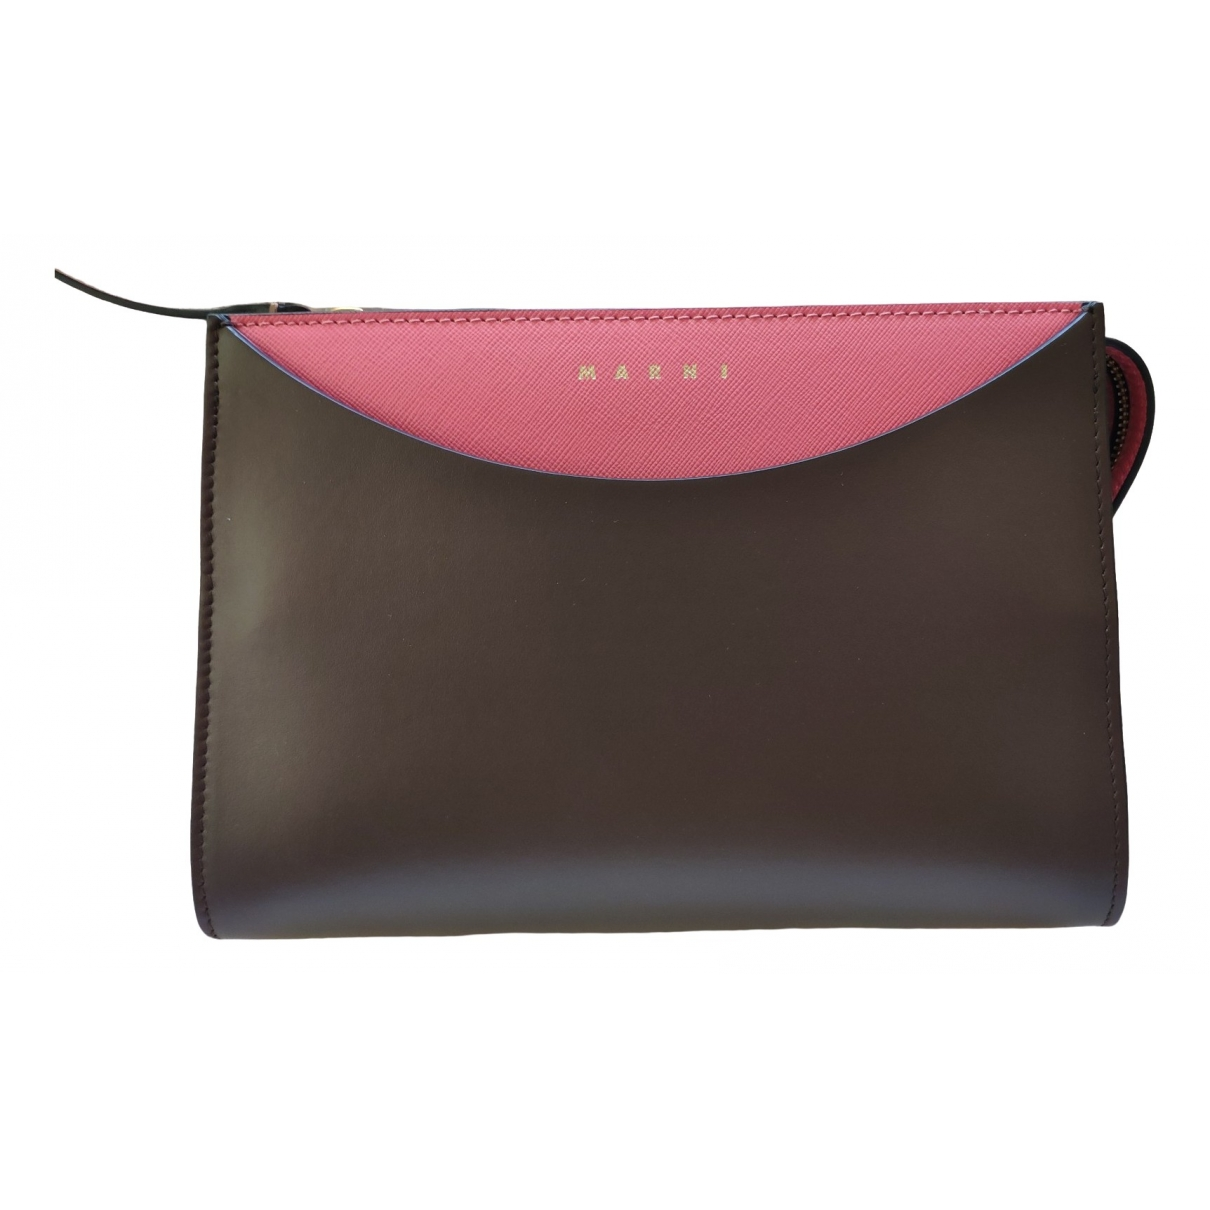 Marni \N Clutch in  Khaki Leder